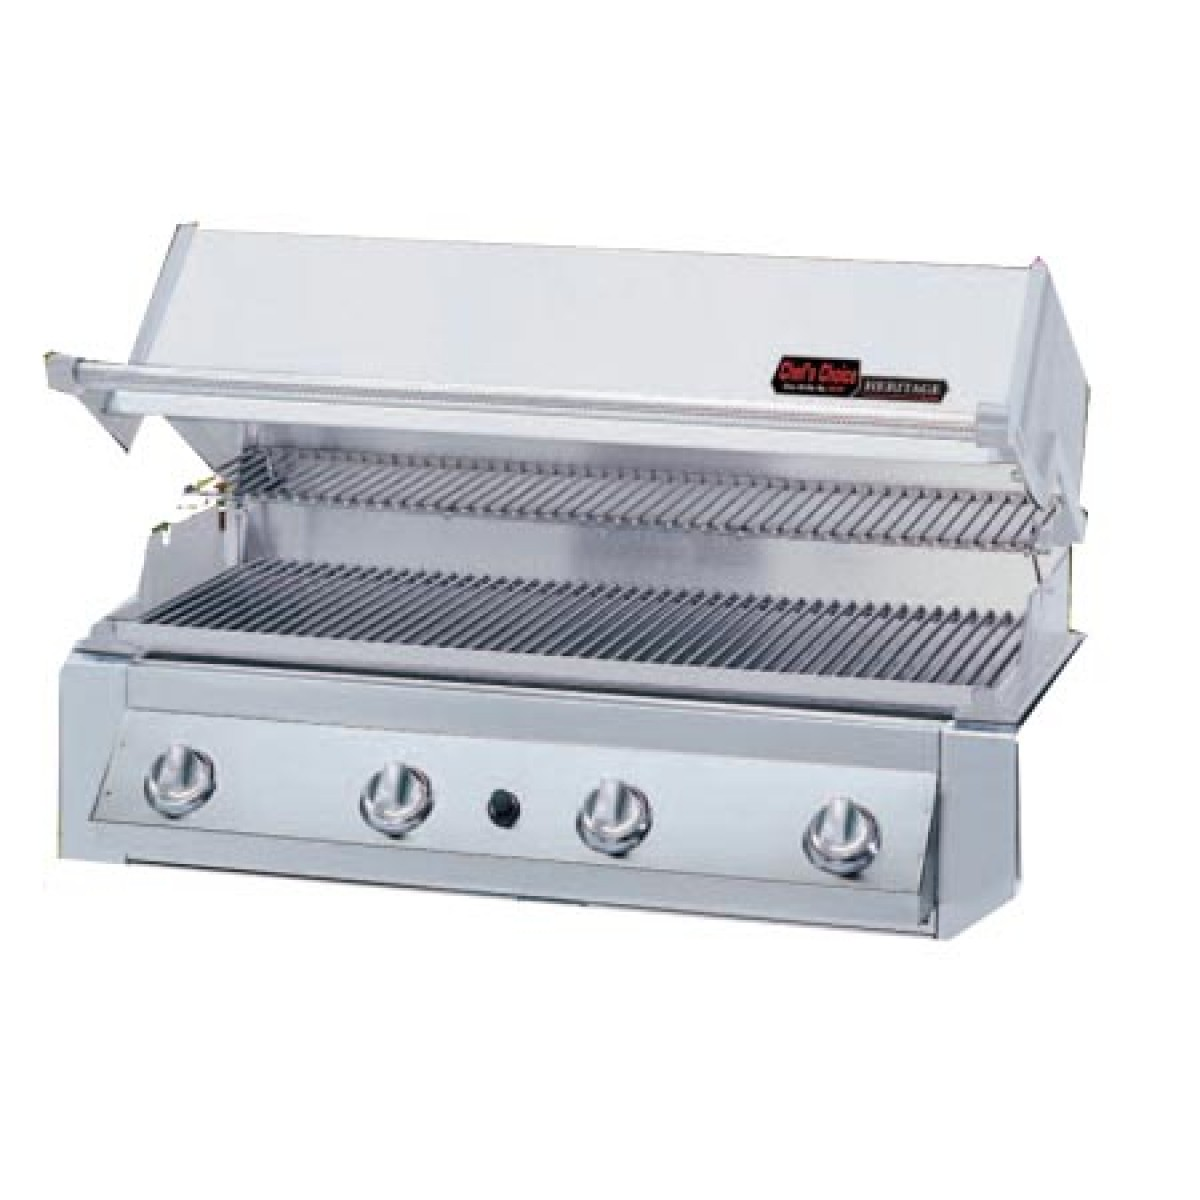 Mhp heritage series gjk 3 stainless steel gas grill - Barbecue stainless steel grill ...